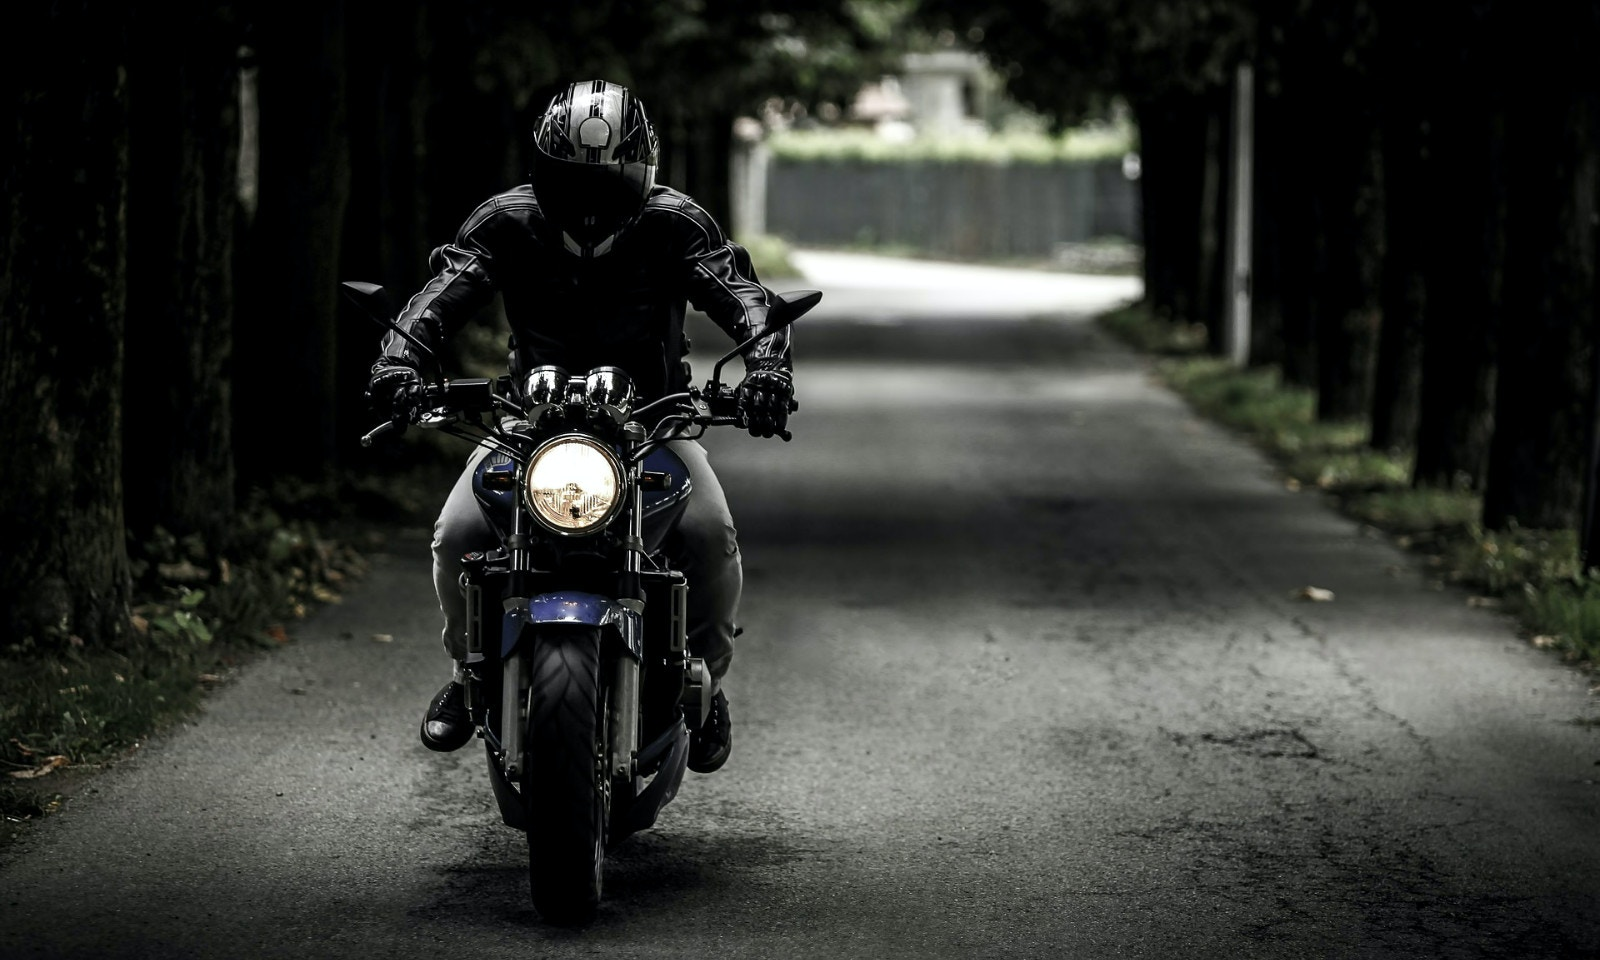 Buying a Motorcycle Jacket - What You Need to Know